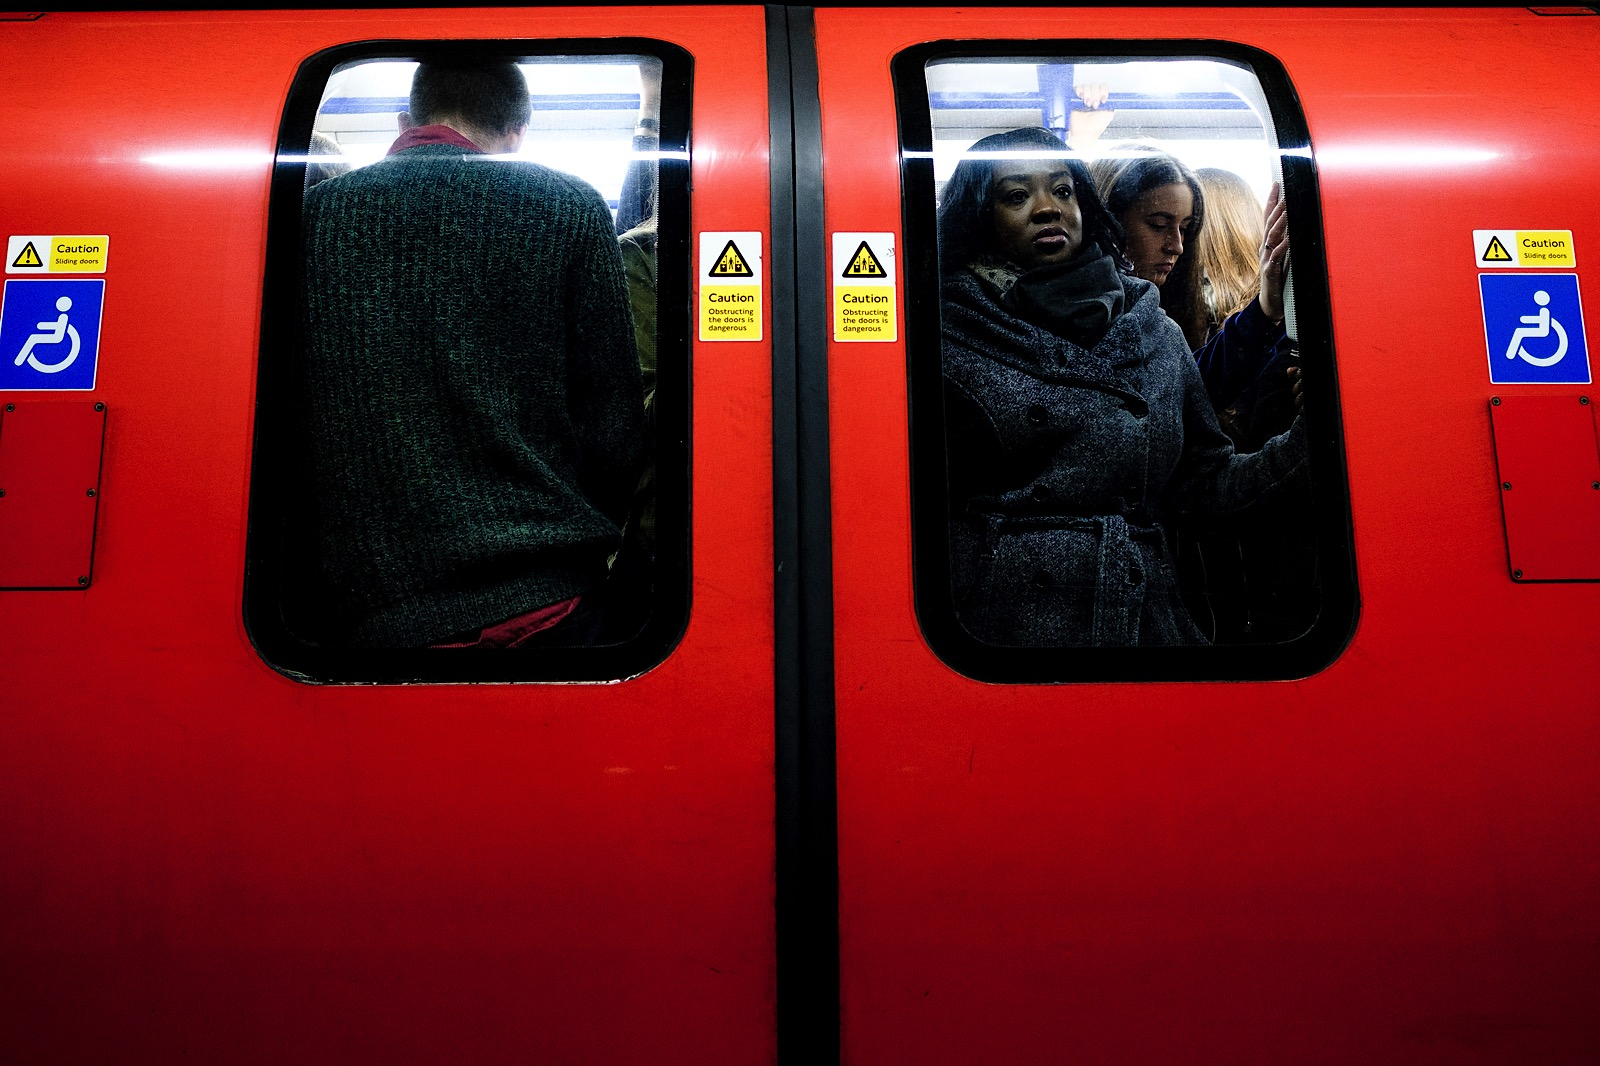 Street Photo of people crammed on a train on the London Underground